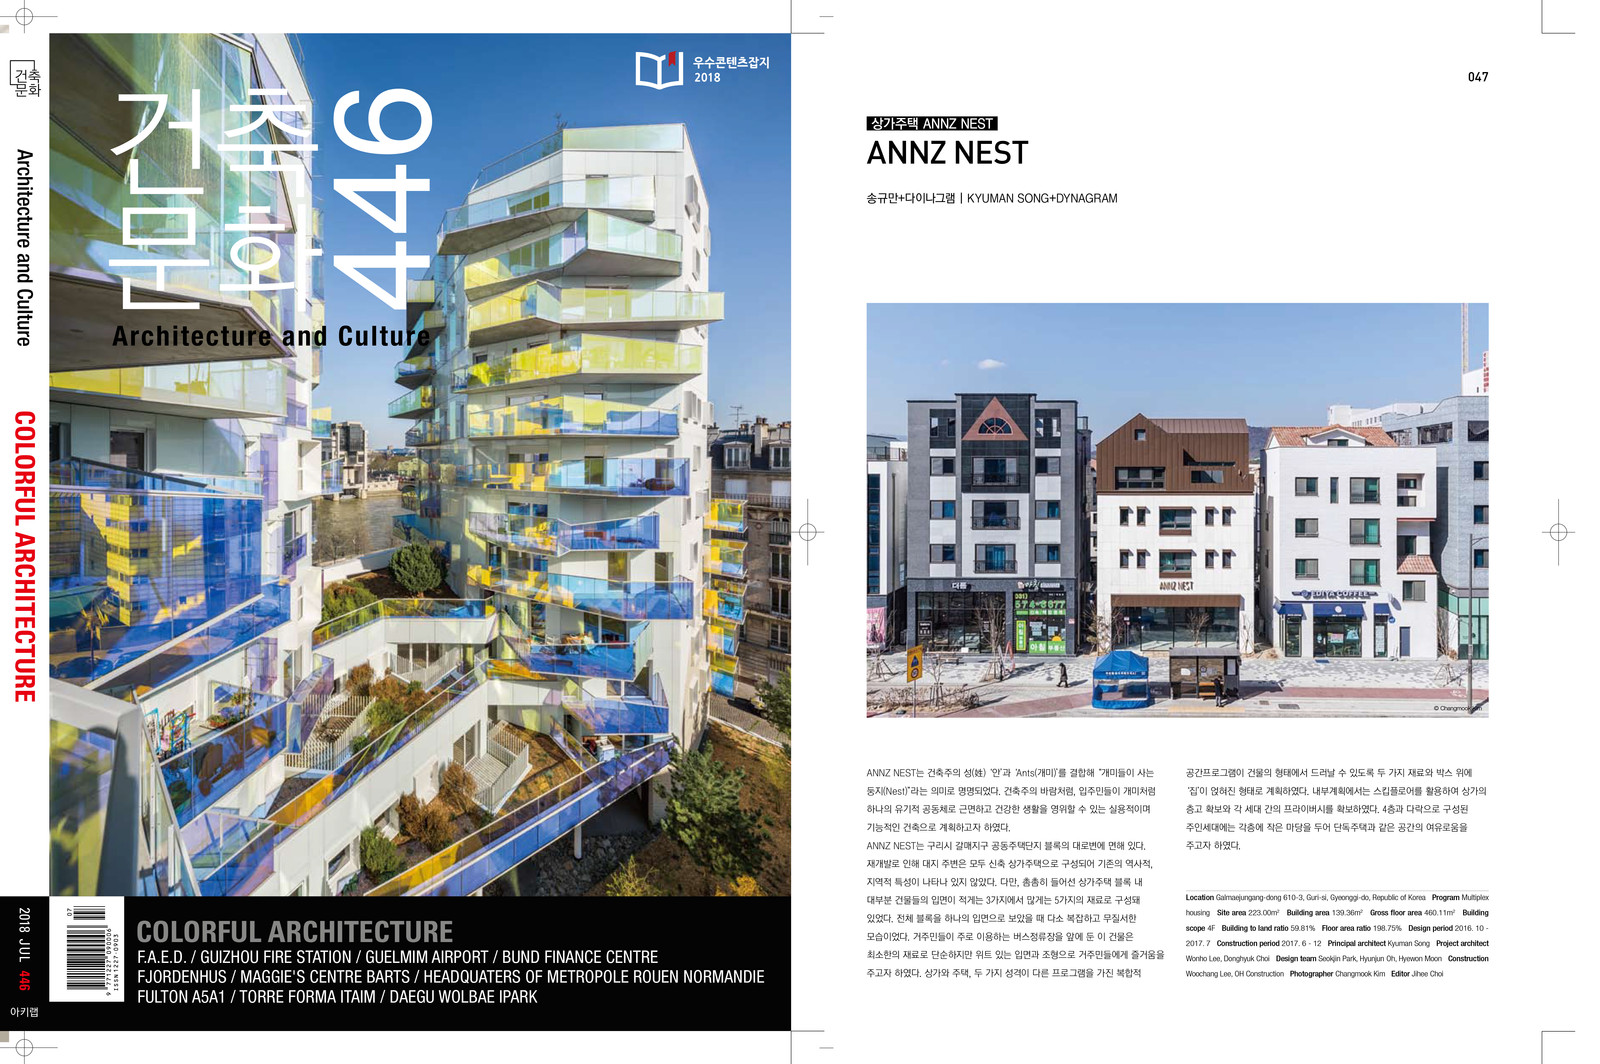 Architecture and Culture Article 'ANNZ NEST'